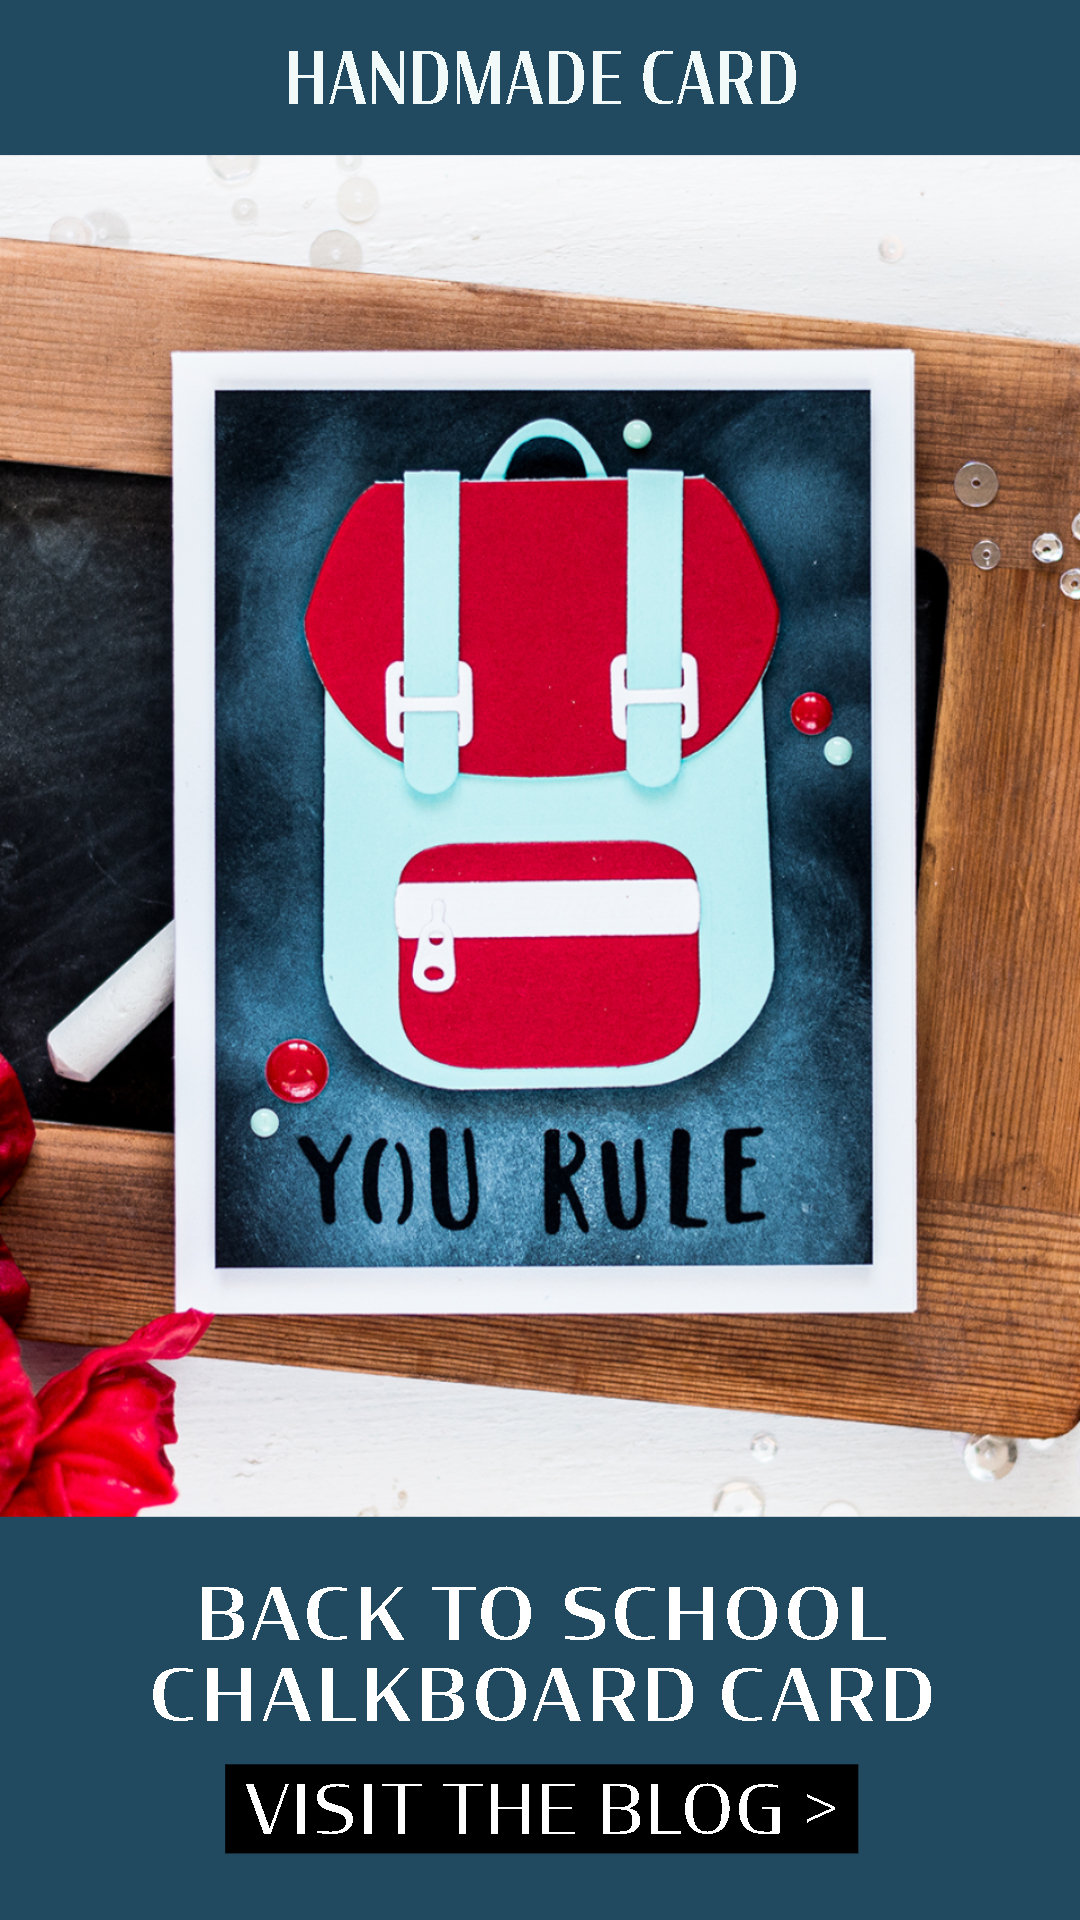 Back to School Backpack Chalkboard Card. Card by Svitlana Shayevich